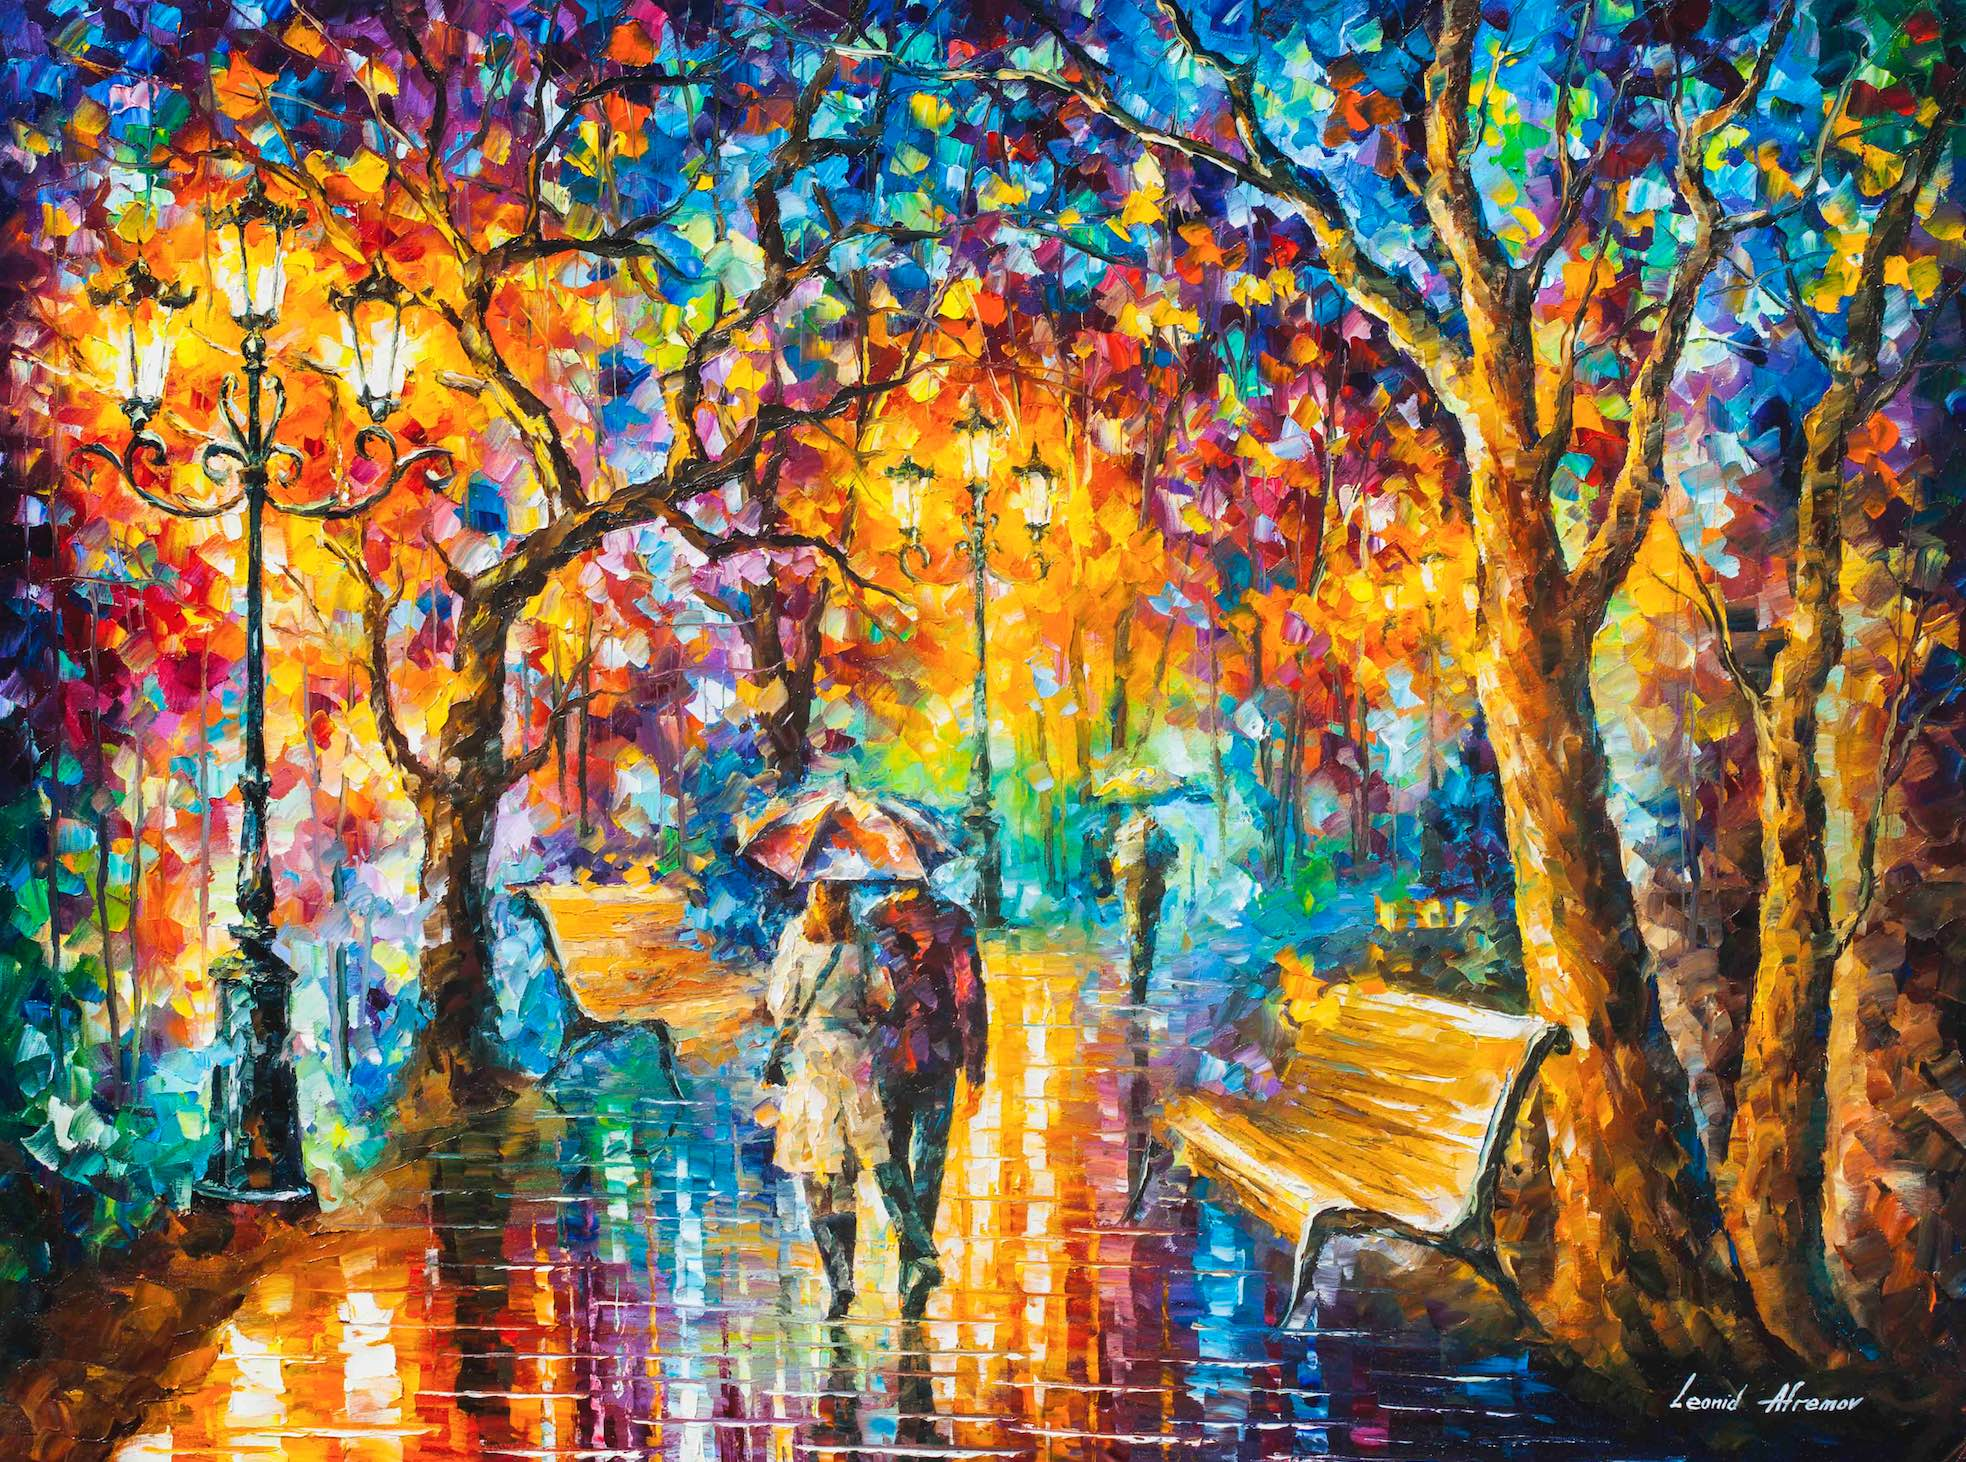 Painting S Rain Vs Love Palette Knife Oil Painting On Canvas By